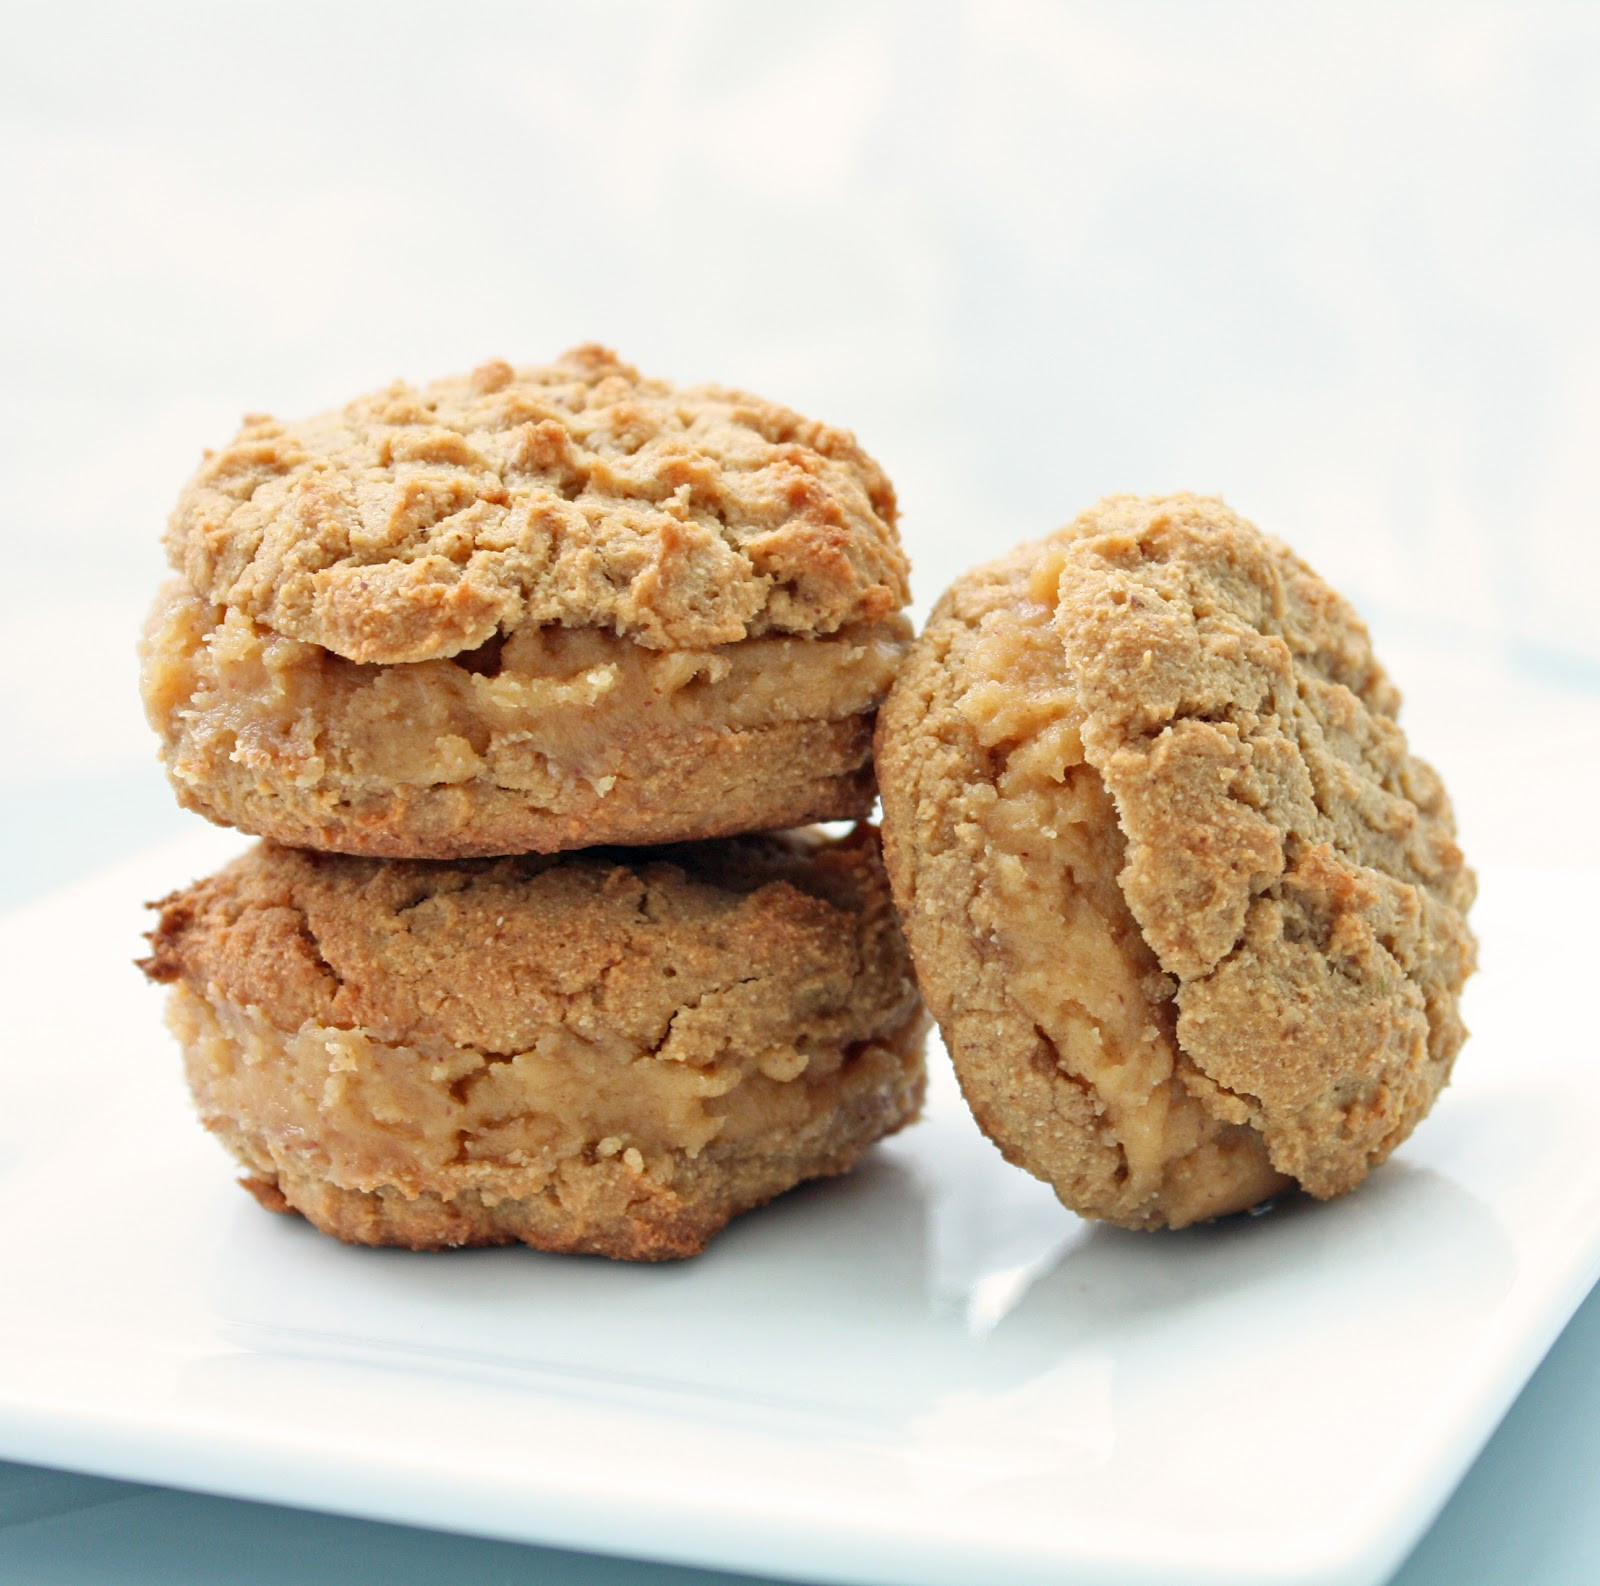 Low Carb Peanut Butter Cookies  Low Carb Peanut Butter Sandwich Cookies